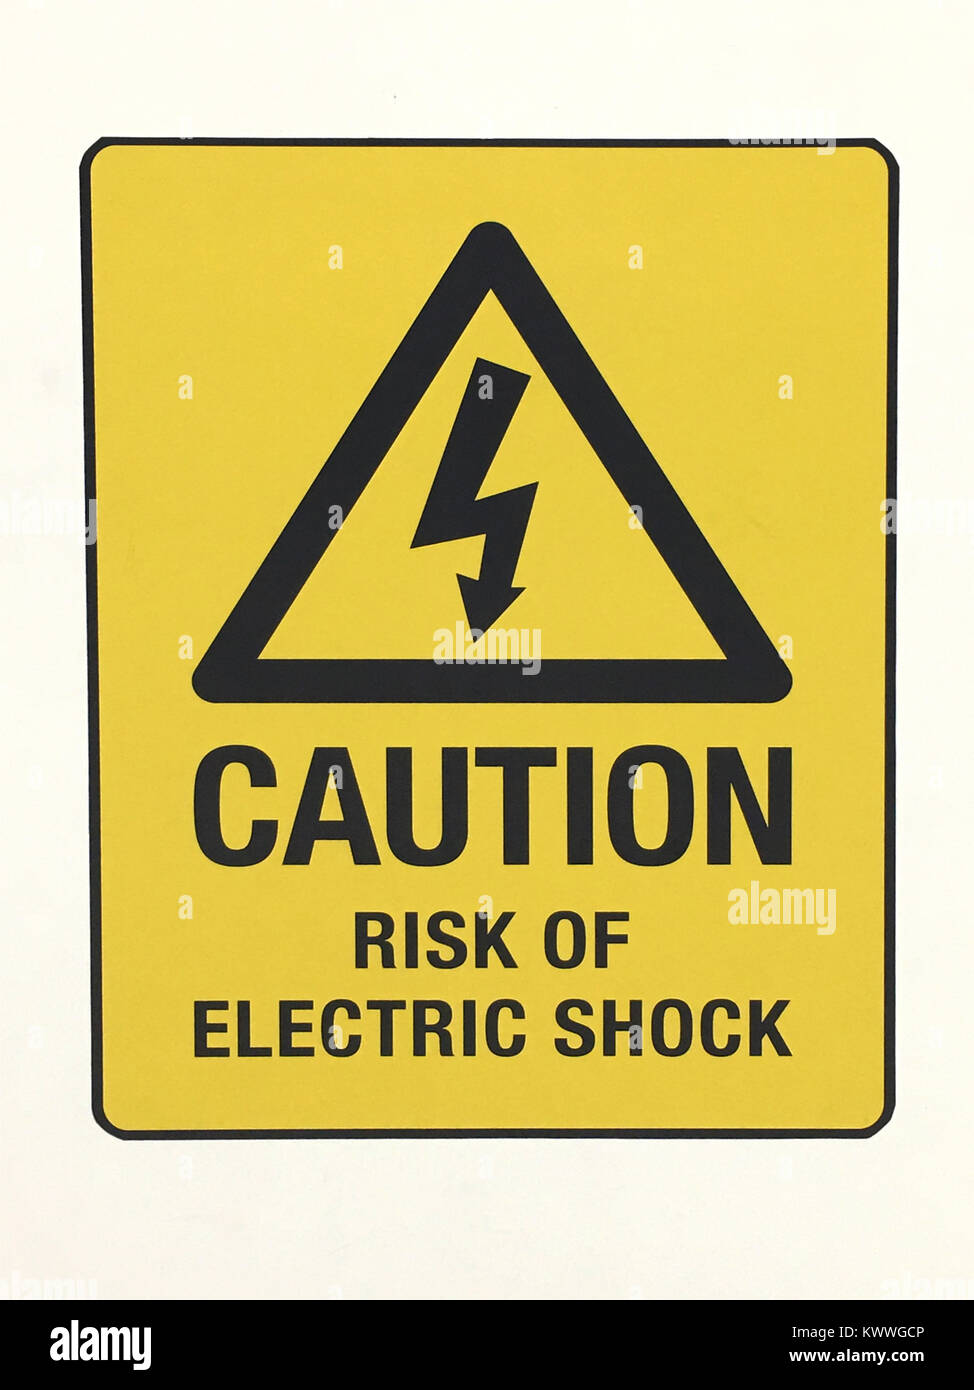 Yellow caution sign warning for risk of electric shock - Stock Image